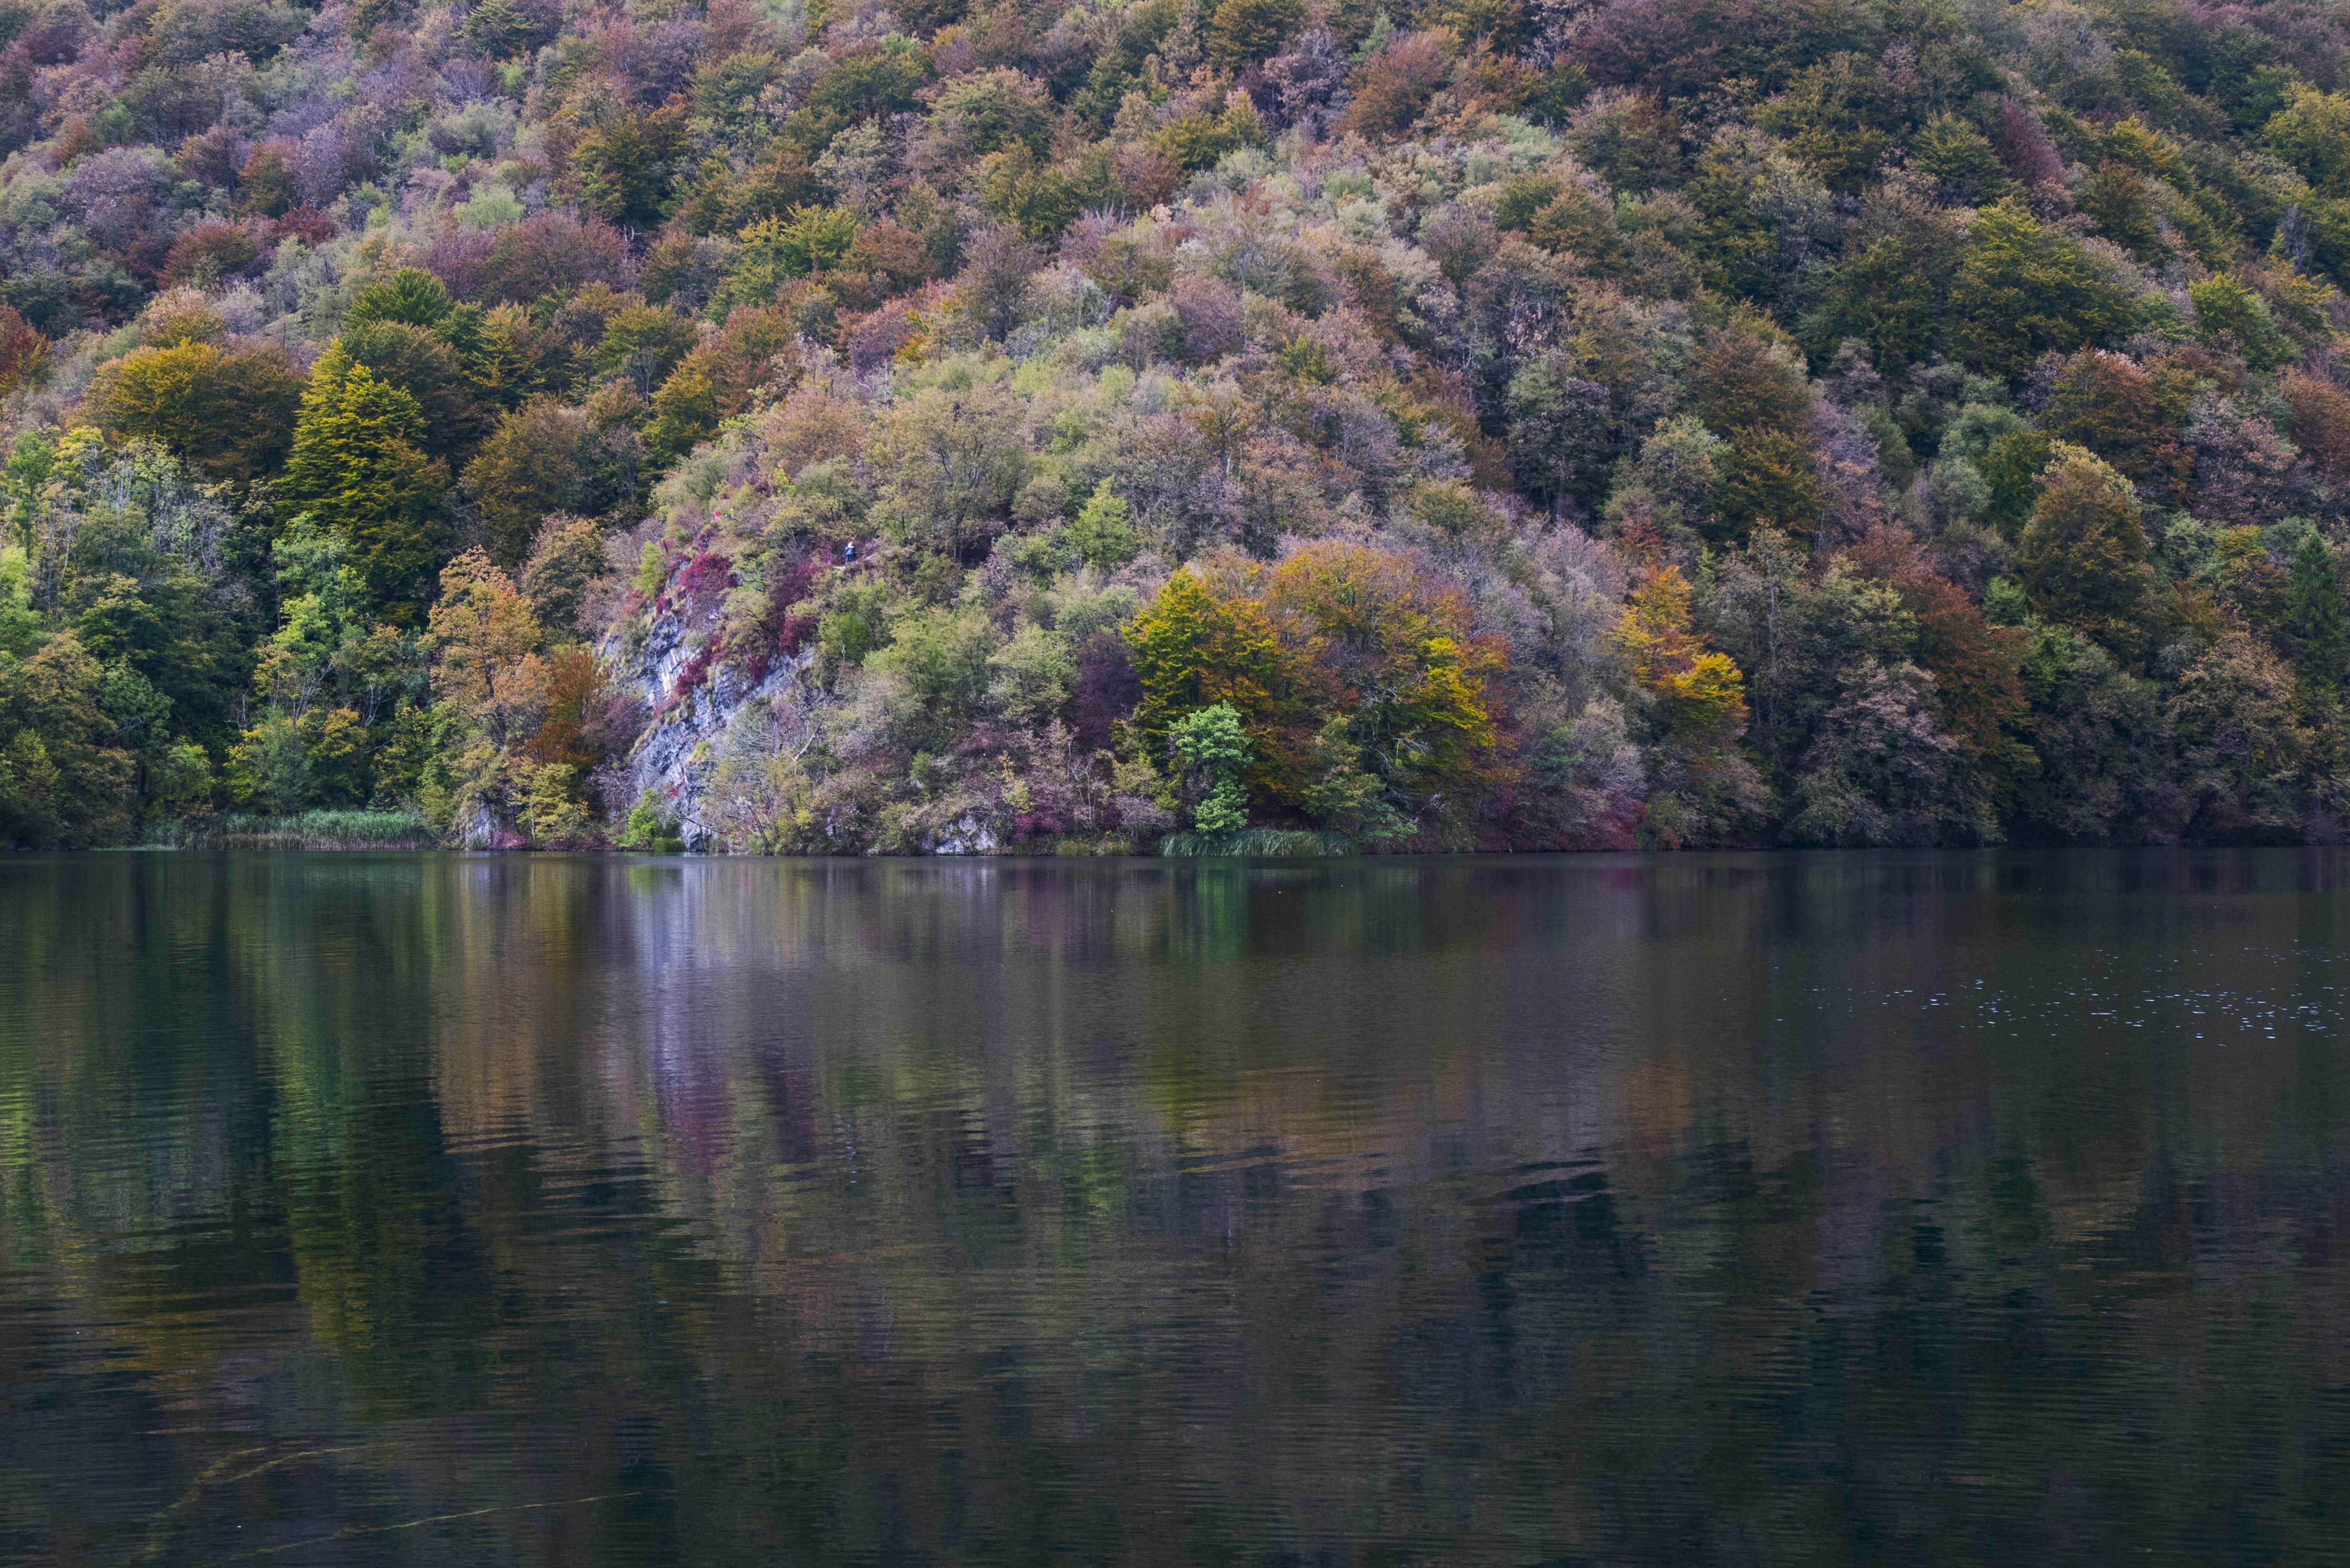 green trees near body of water